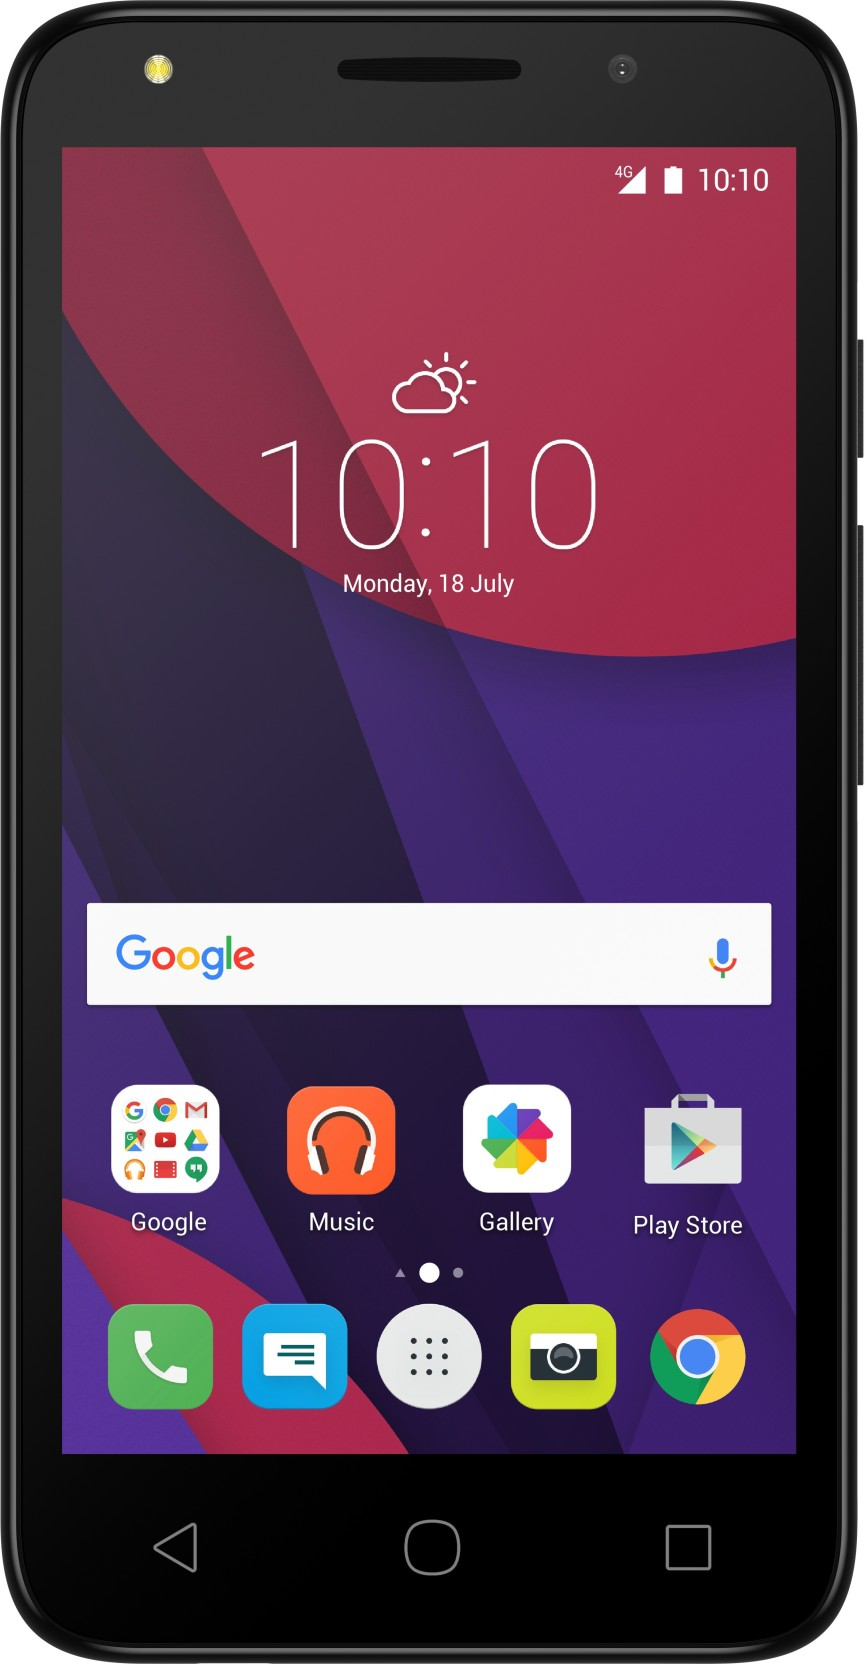 Alcatel Pixi4 Volcano Black 8 Gb Online At Best Price Only On Hp Slate 7 Voicetab 16 3g Silver Add To Cart